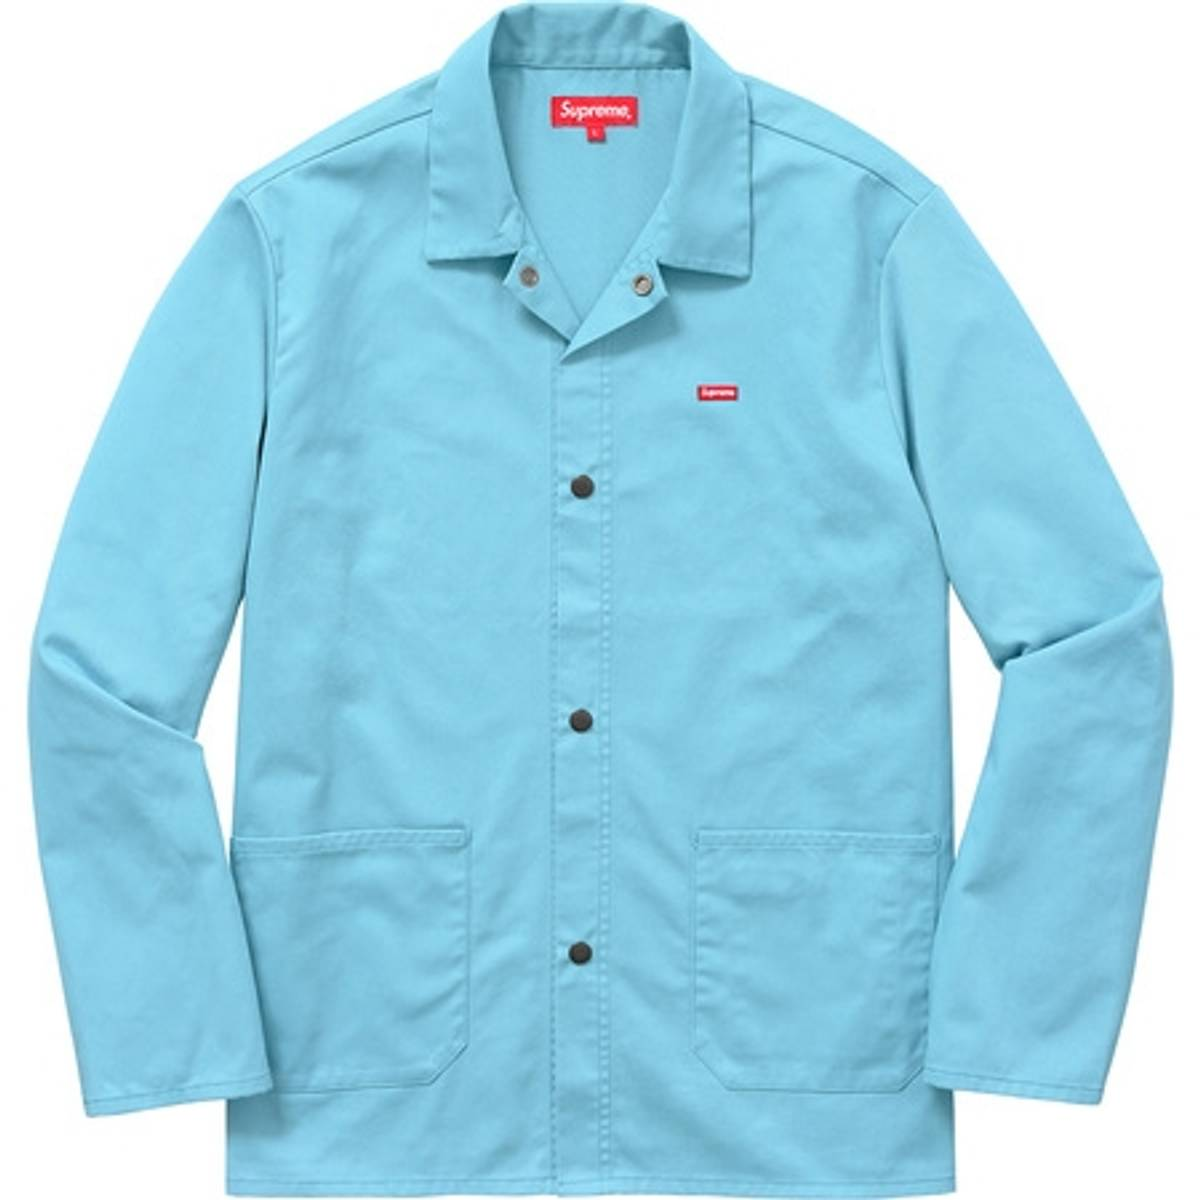 Supreme Shop Jacket Baby Blue Size M Light Jackets For Sale Grailed